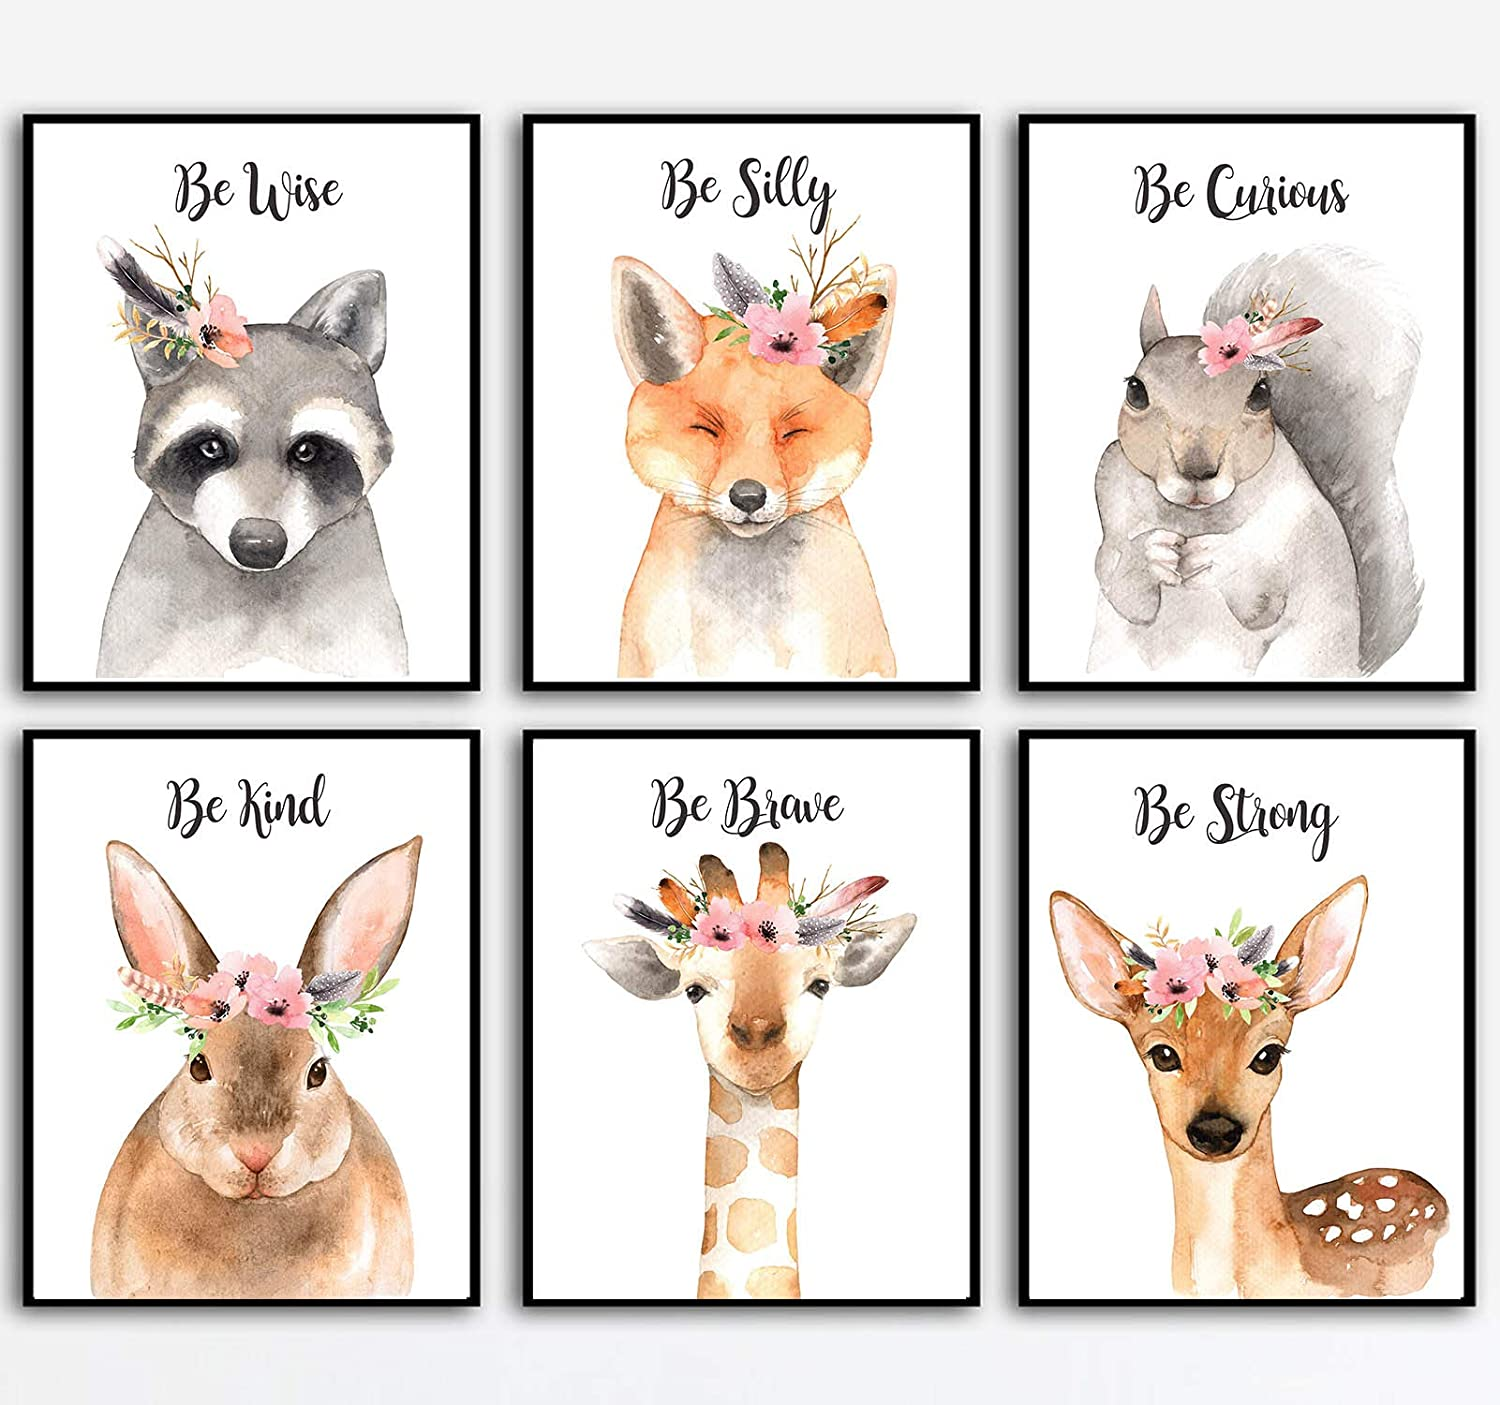 Woodland Animals Nursery Wall Art - Watercolor Floral Woodland Nursery Paintings - Woodland Wall Decor - Baby Decor Cute Quotes- 8x10 (Unframed) Set of 6 Prints